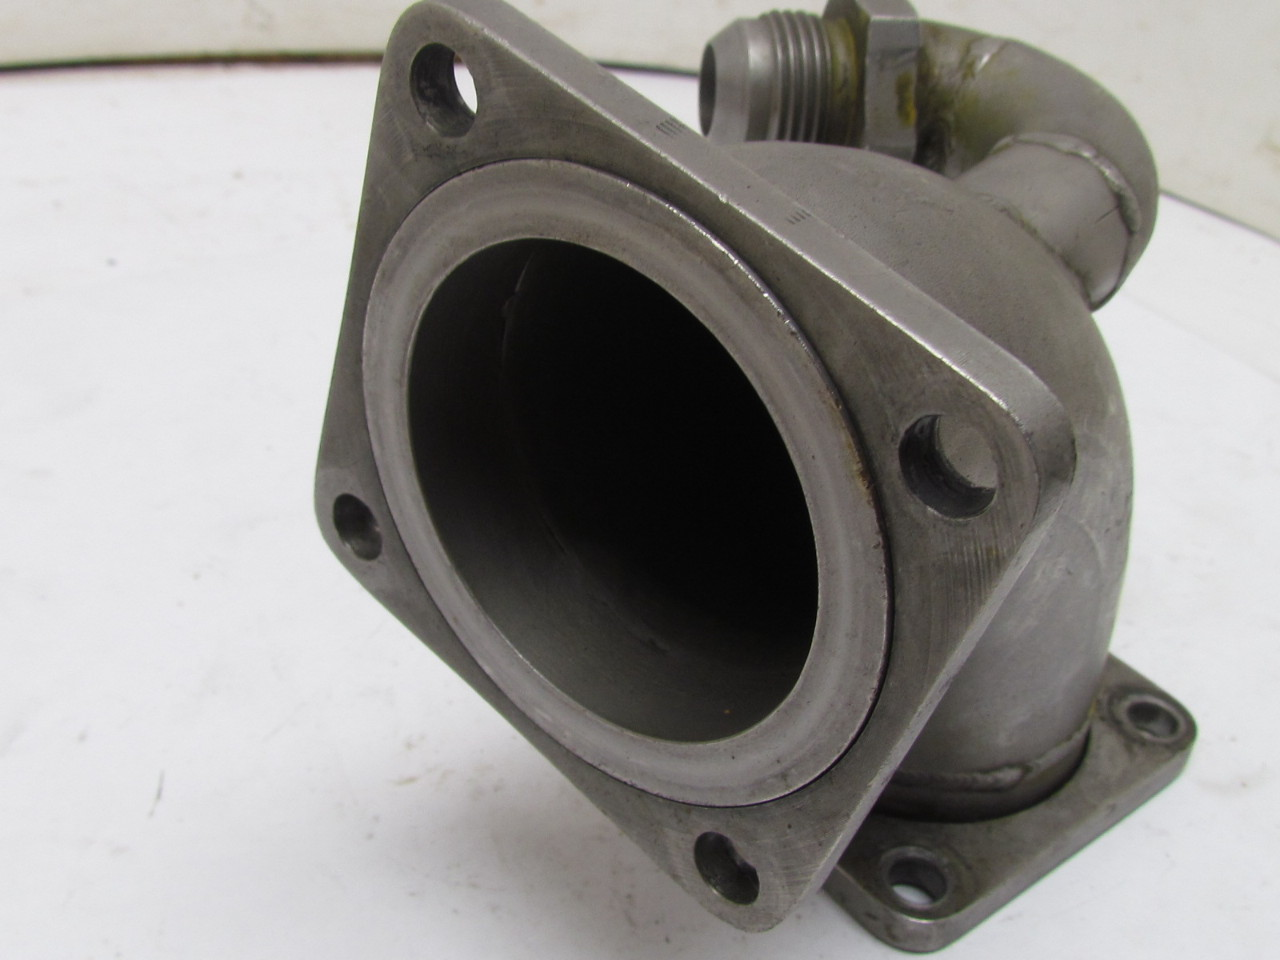 Stainless steel flanged end deg elbow pipe fitting